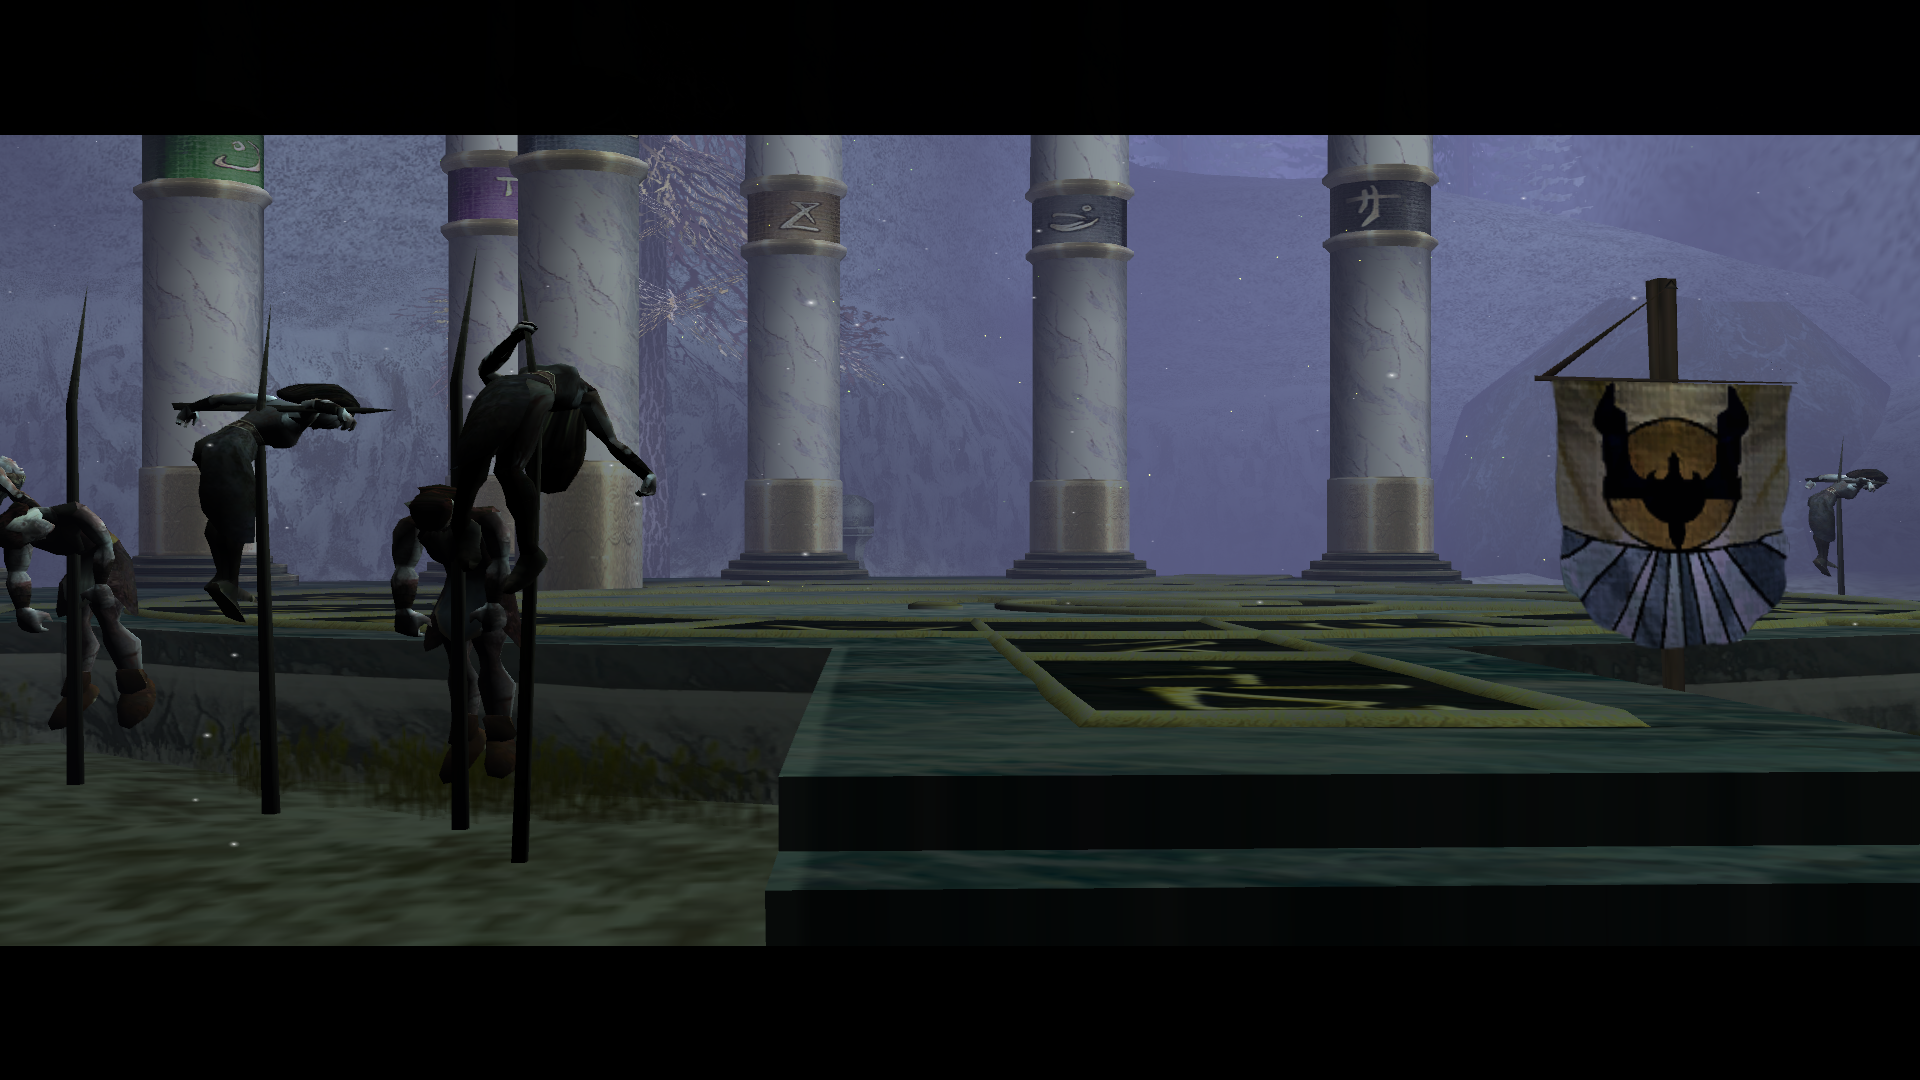 SR2--EraC-Cutscene-KillingFields-Alternate-Pillars-05.png